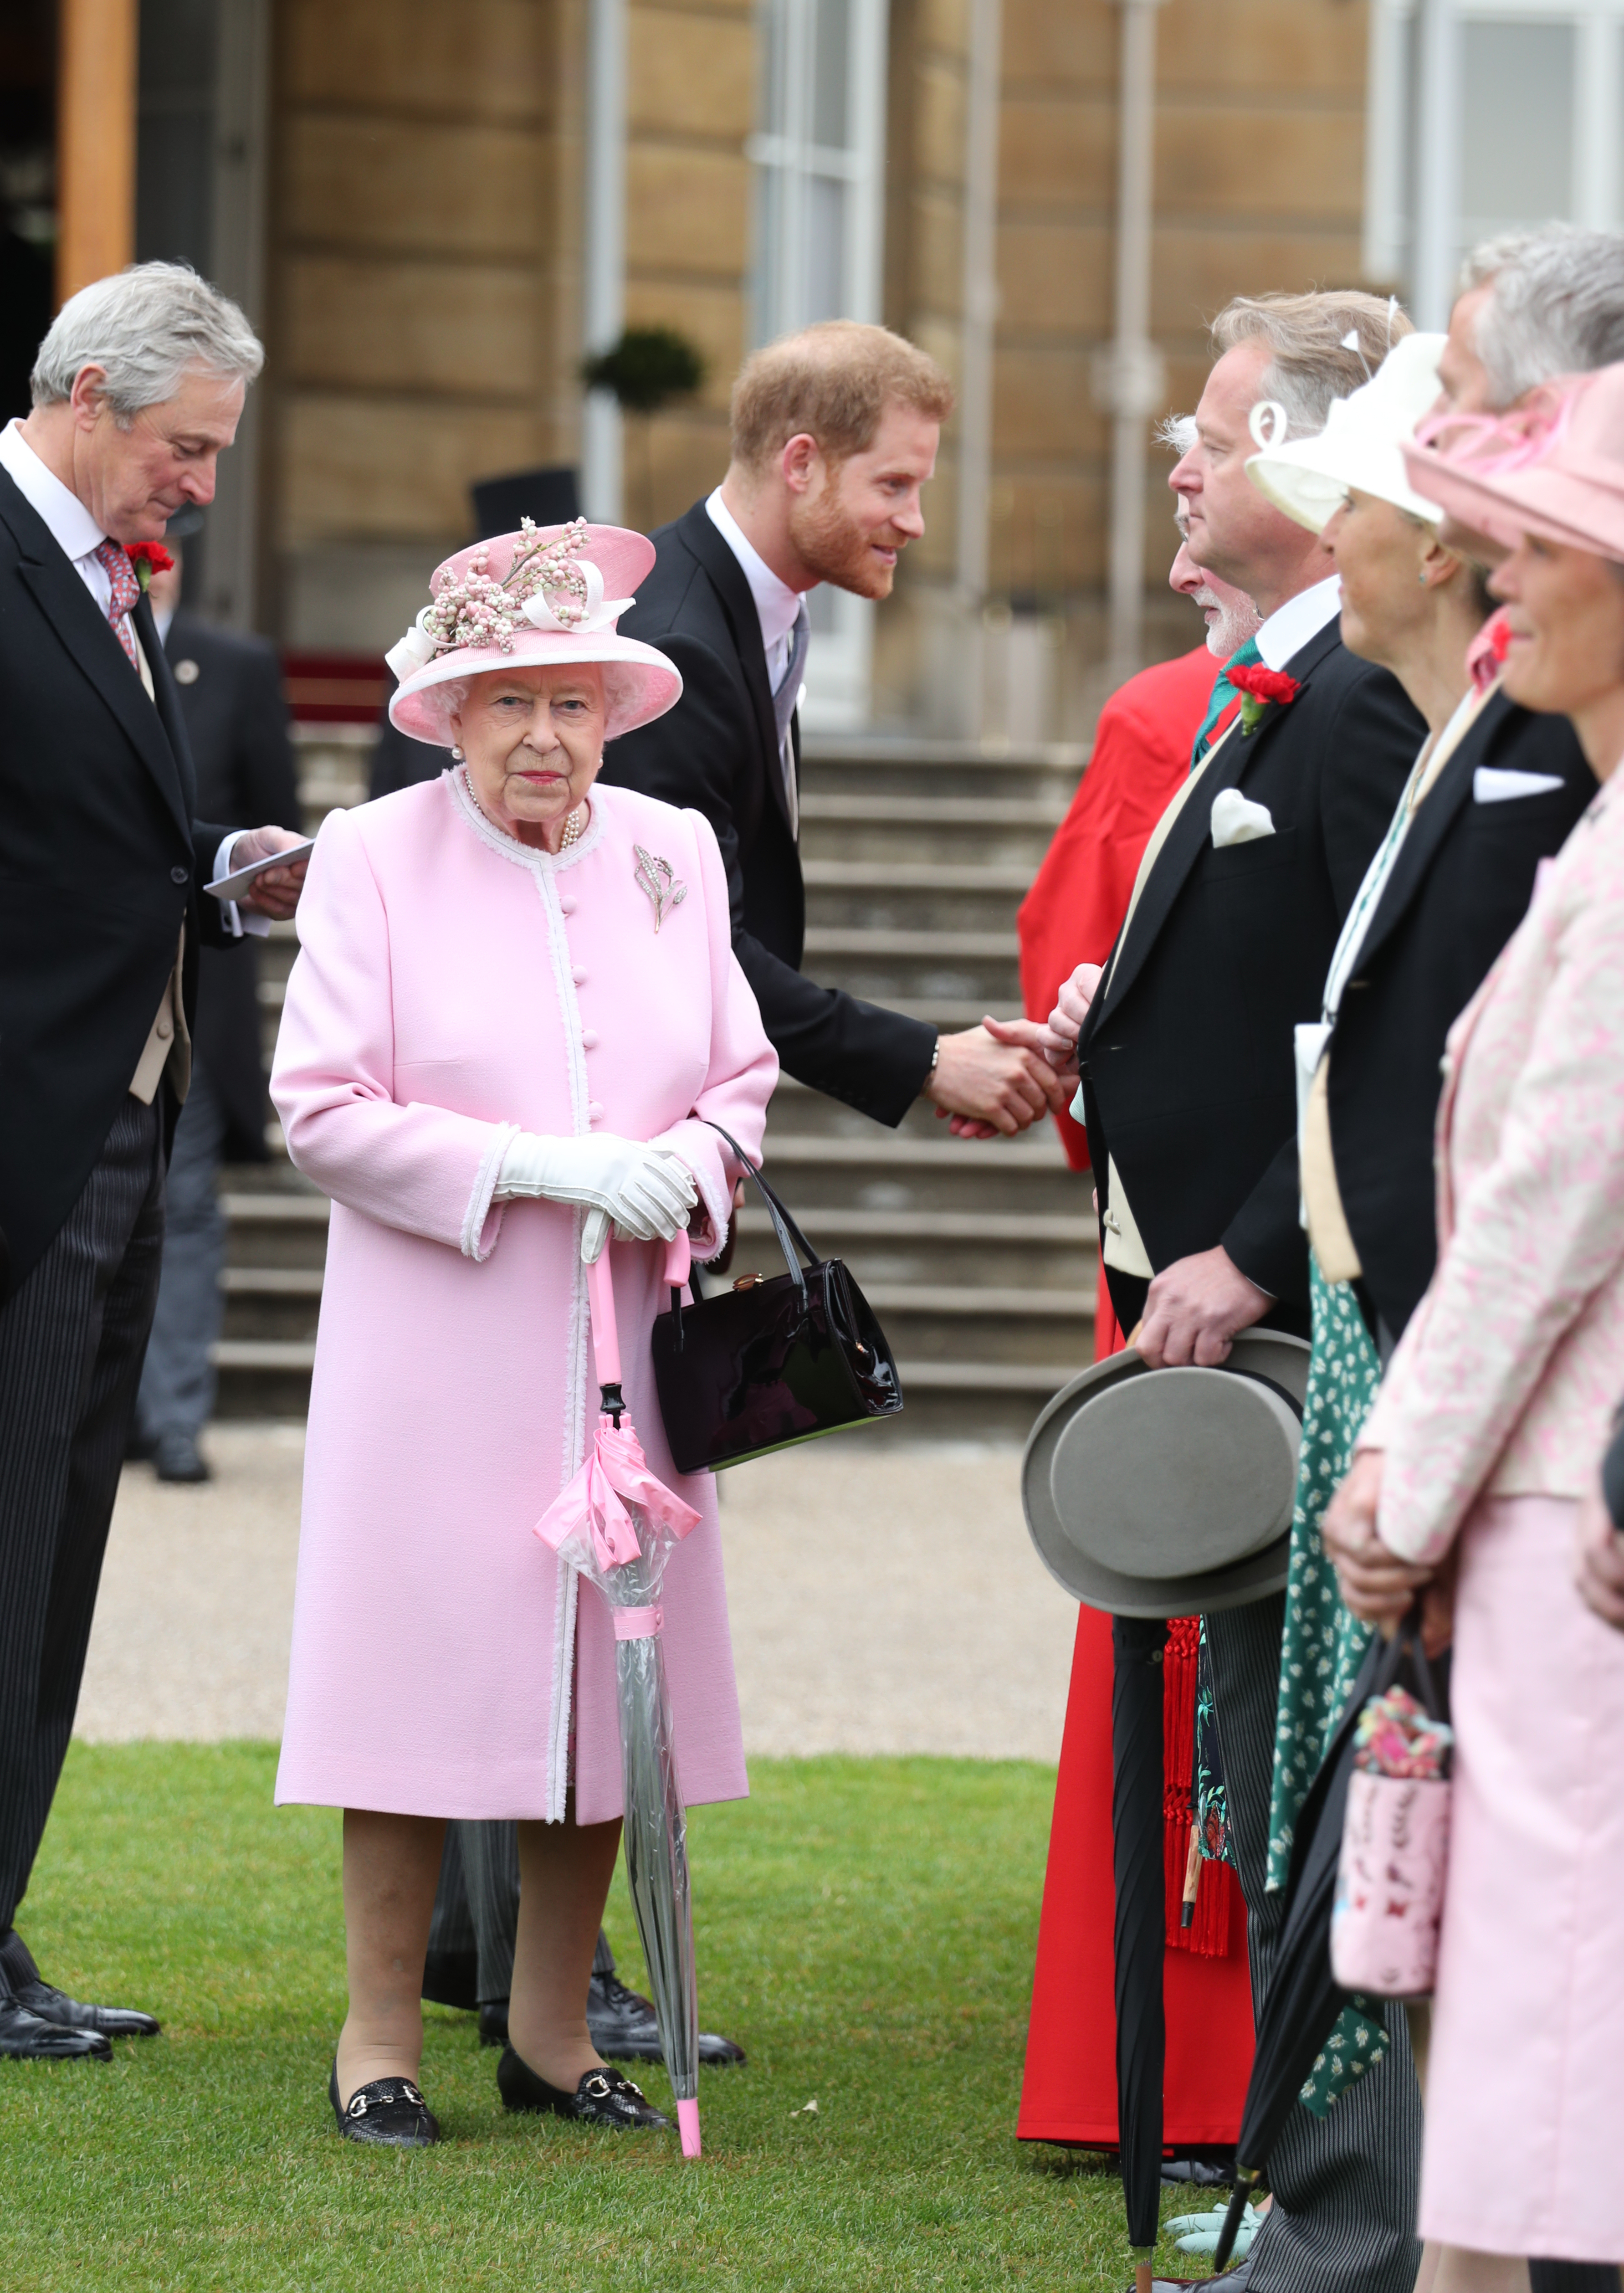 Queen Elizabeth II and the Duke of Sussex meet guests during a Royal Garden Party at Buckingham Palace in London.